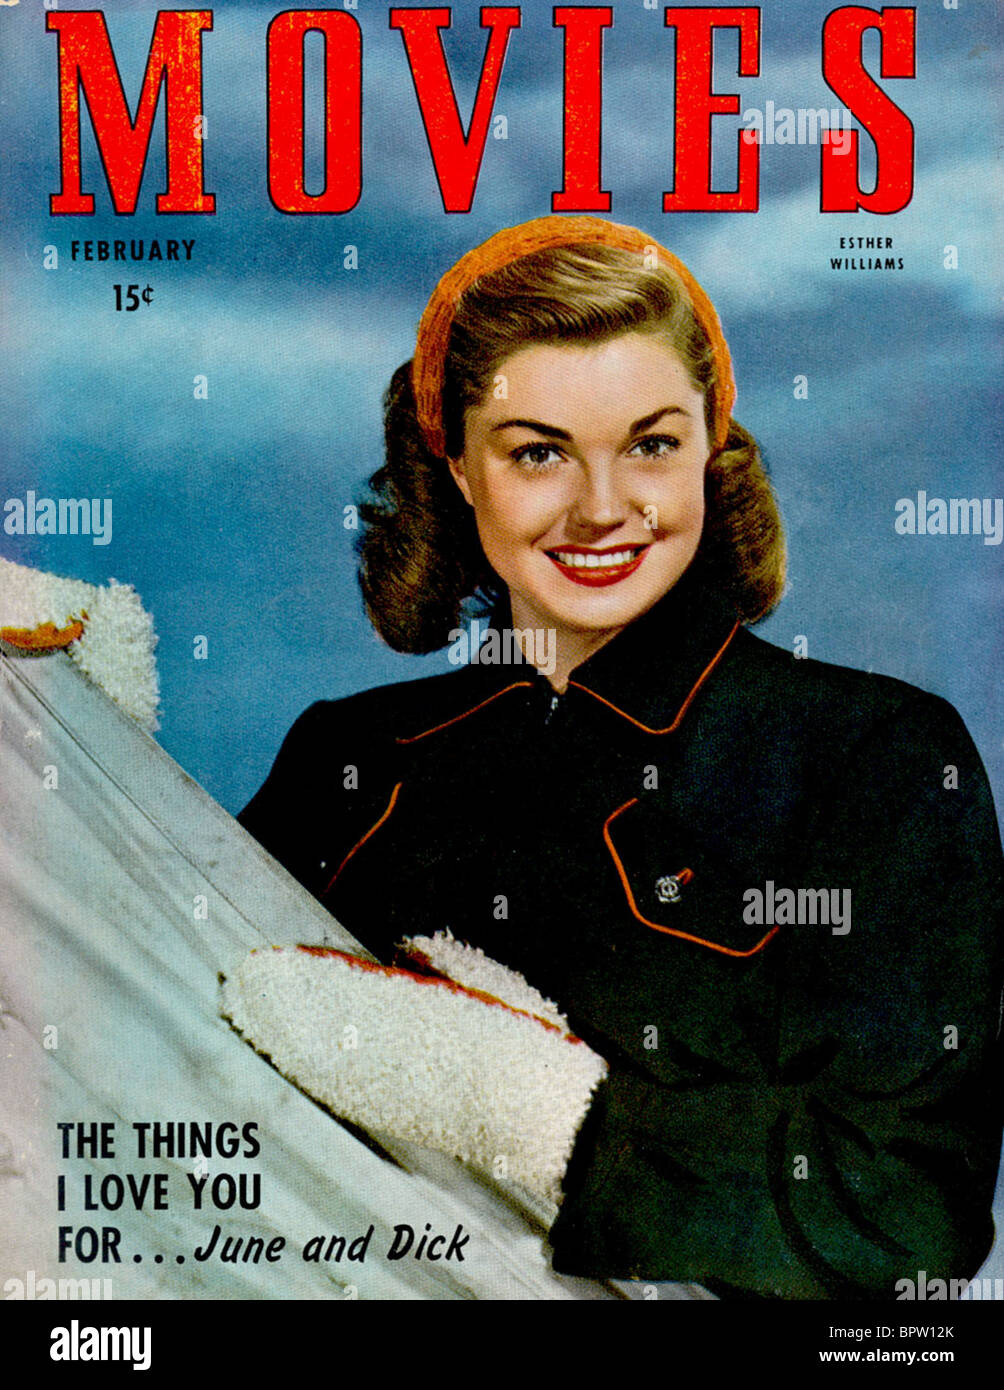 ESTHER WILLIAMS MOVIES MAGAZINE COVER (1947) - Stock Image